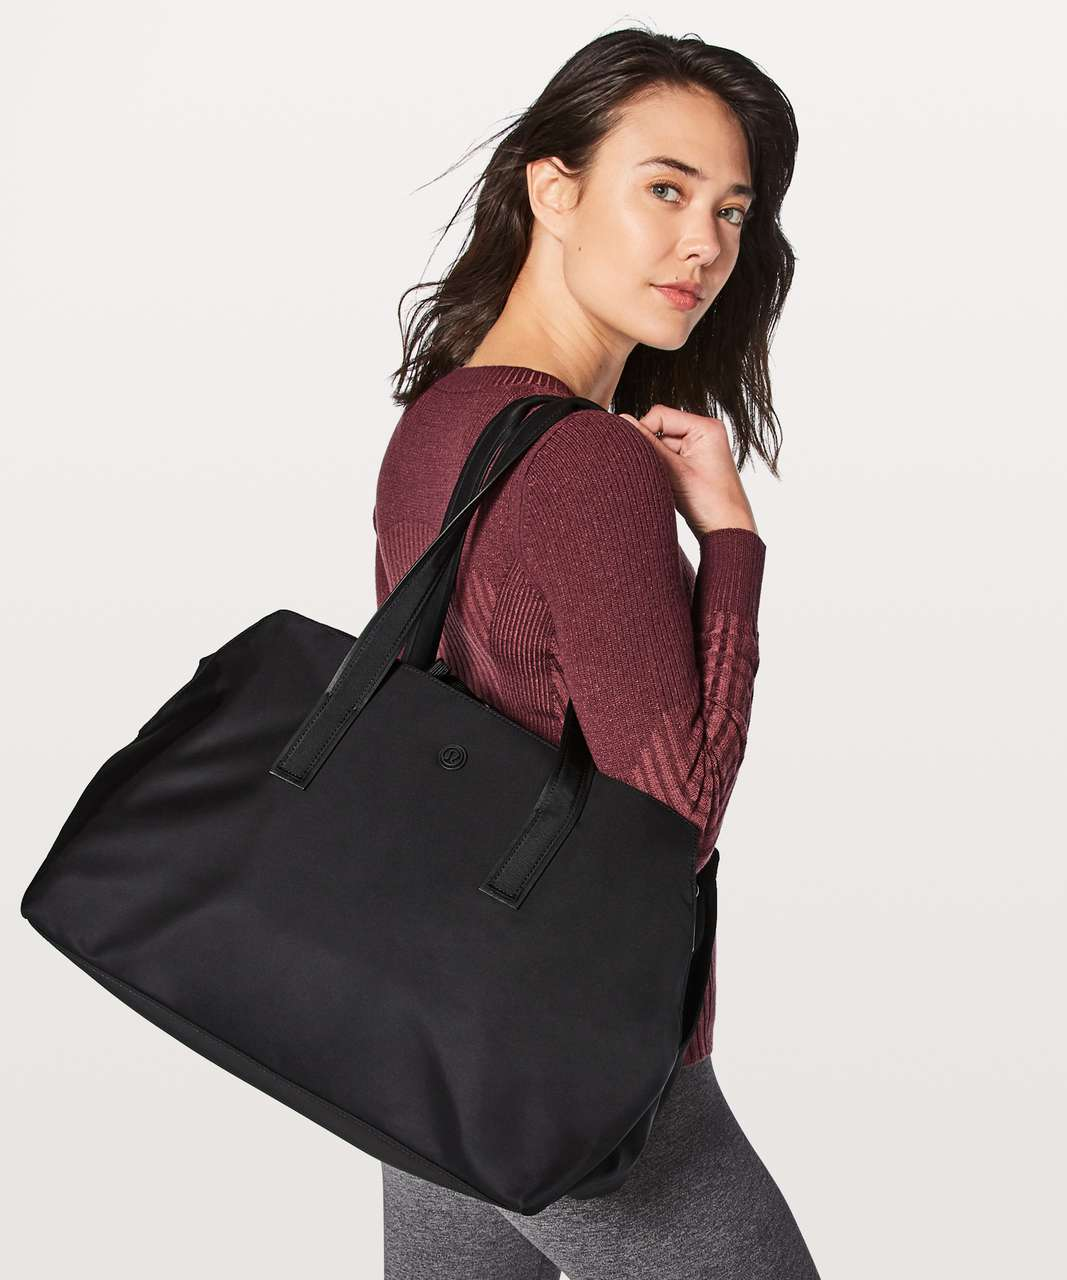 Lululemon Go Getter Bag *Heatproof Pocket 26L - Black